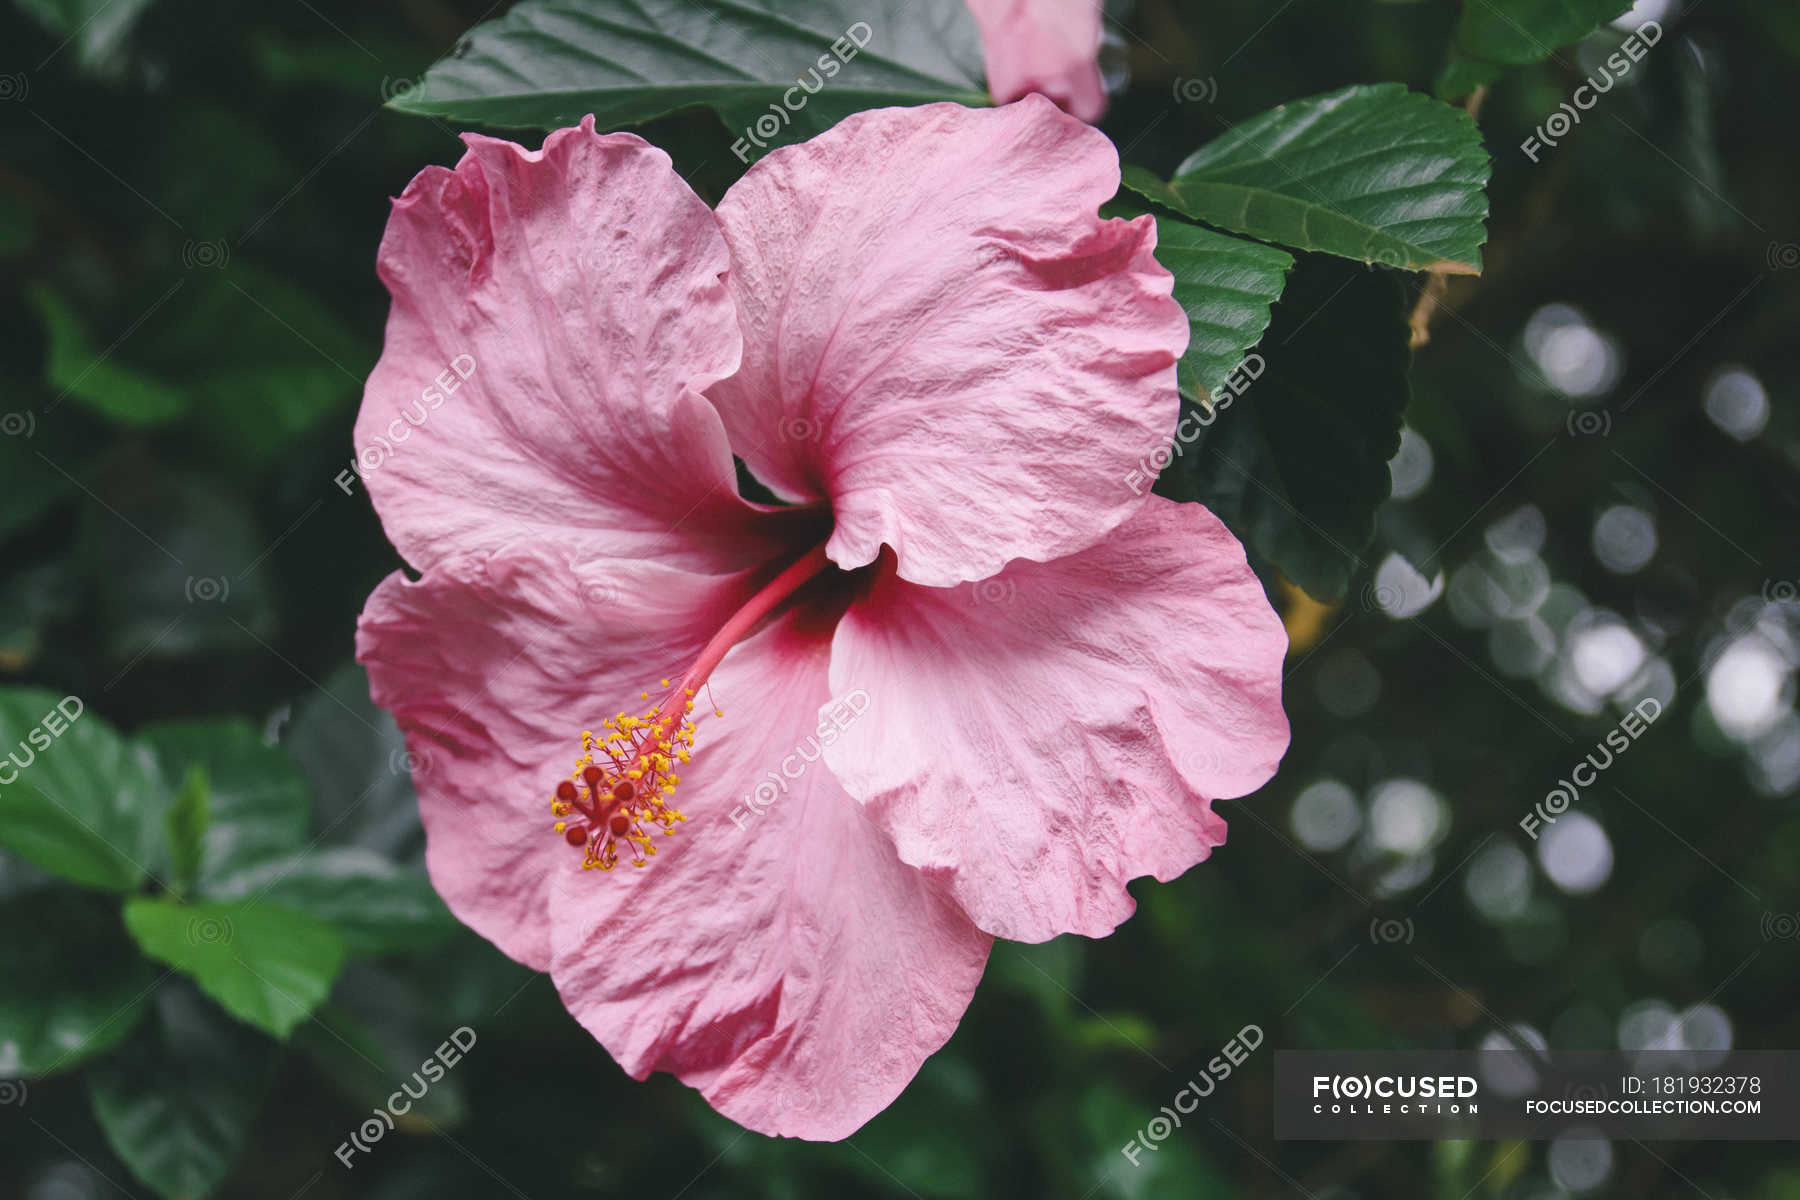 Close Up Of Tropical Pink Flower Growing On Plant Stock Photo